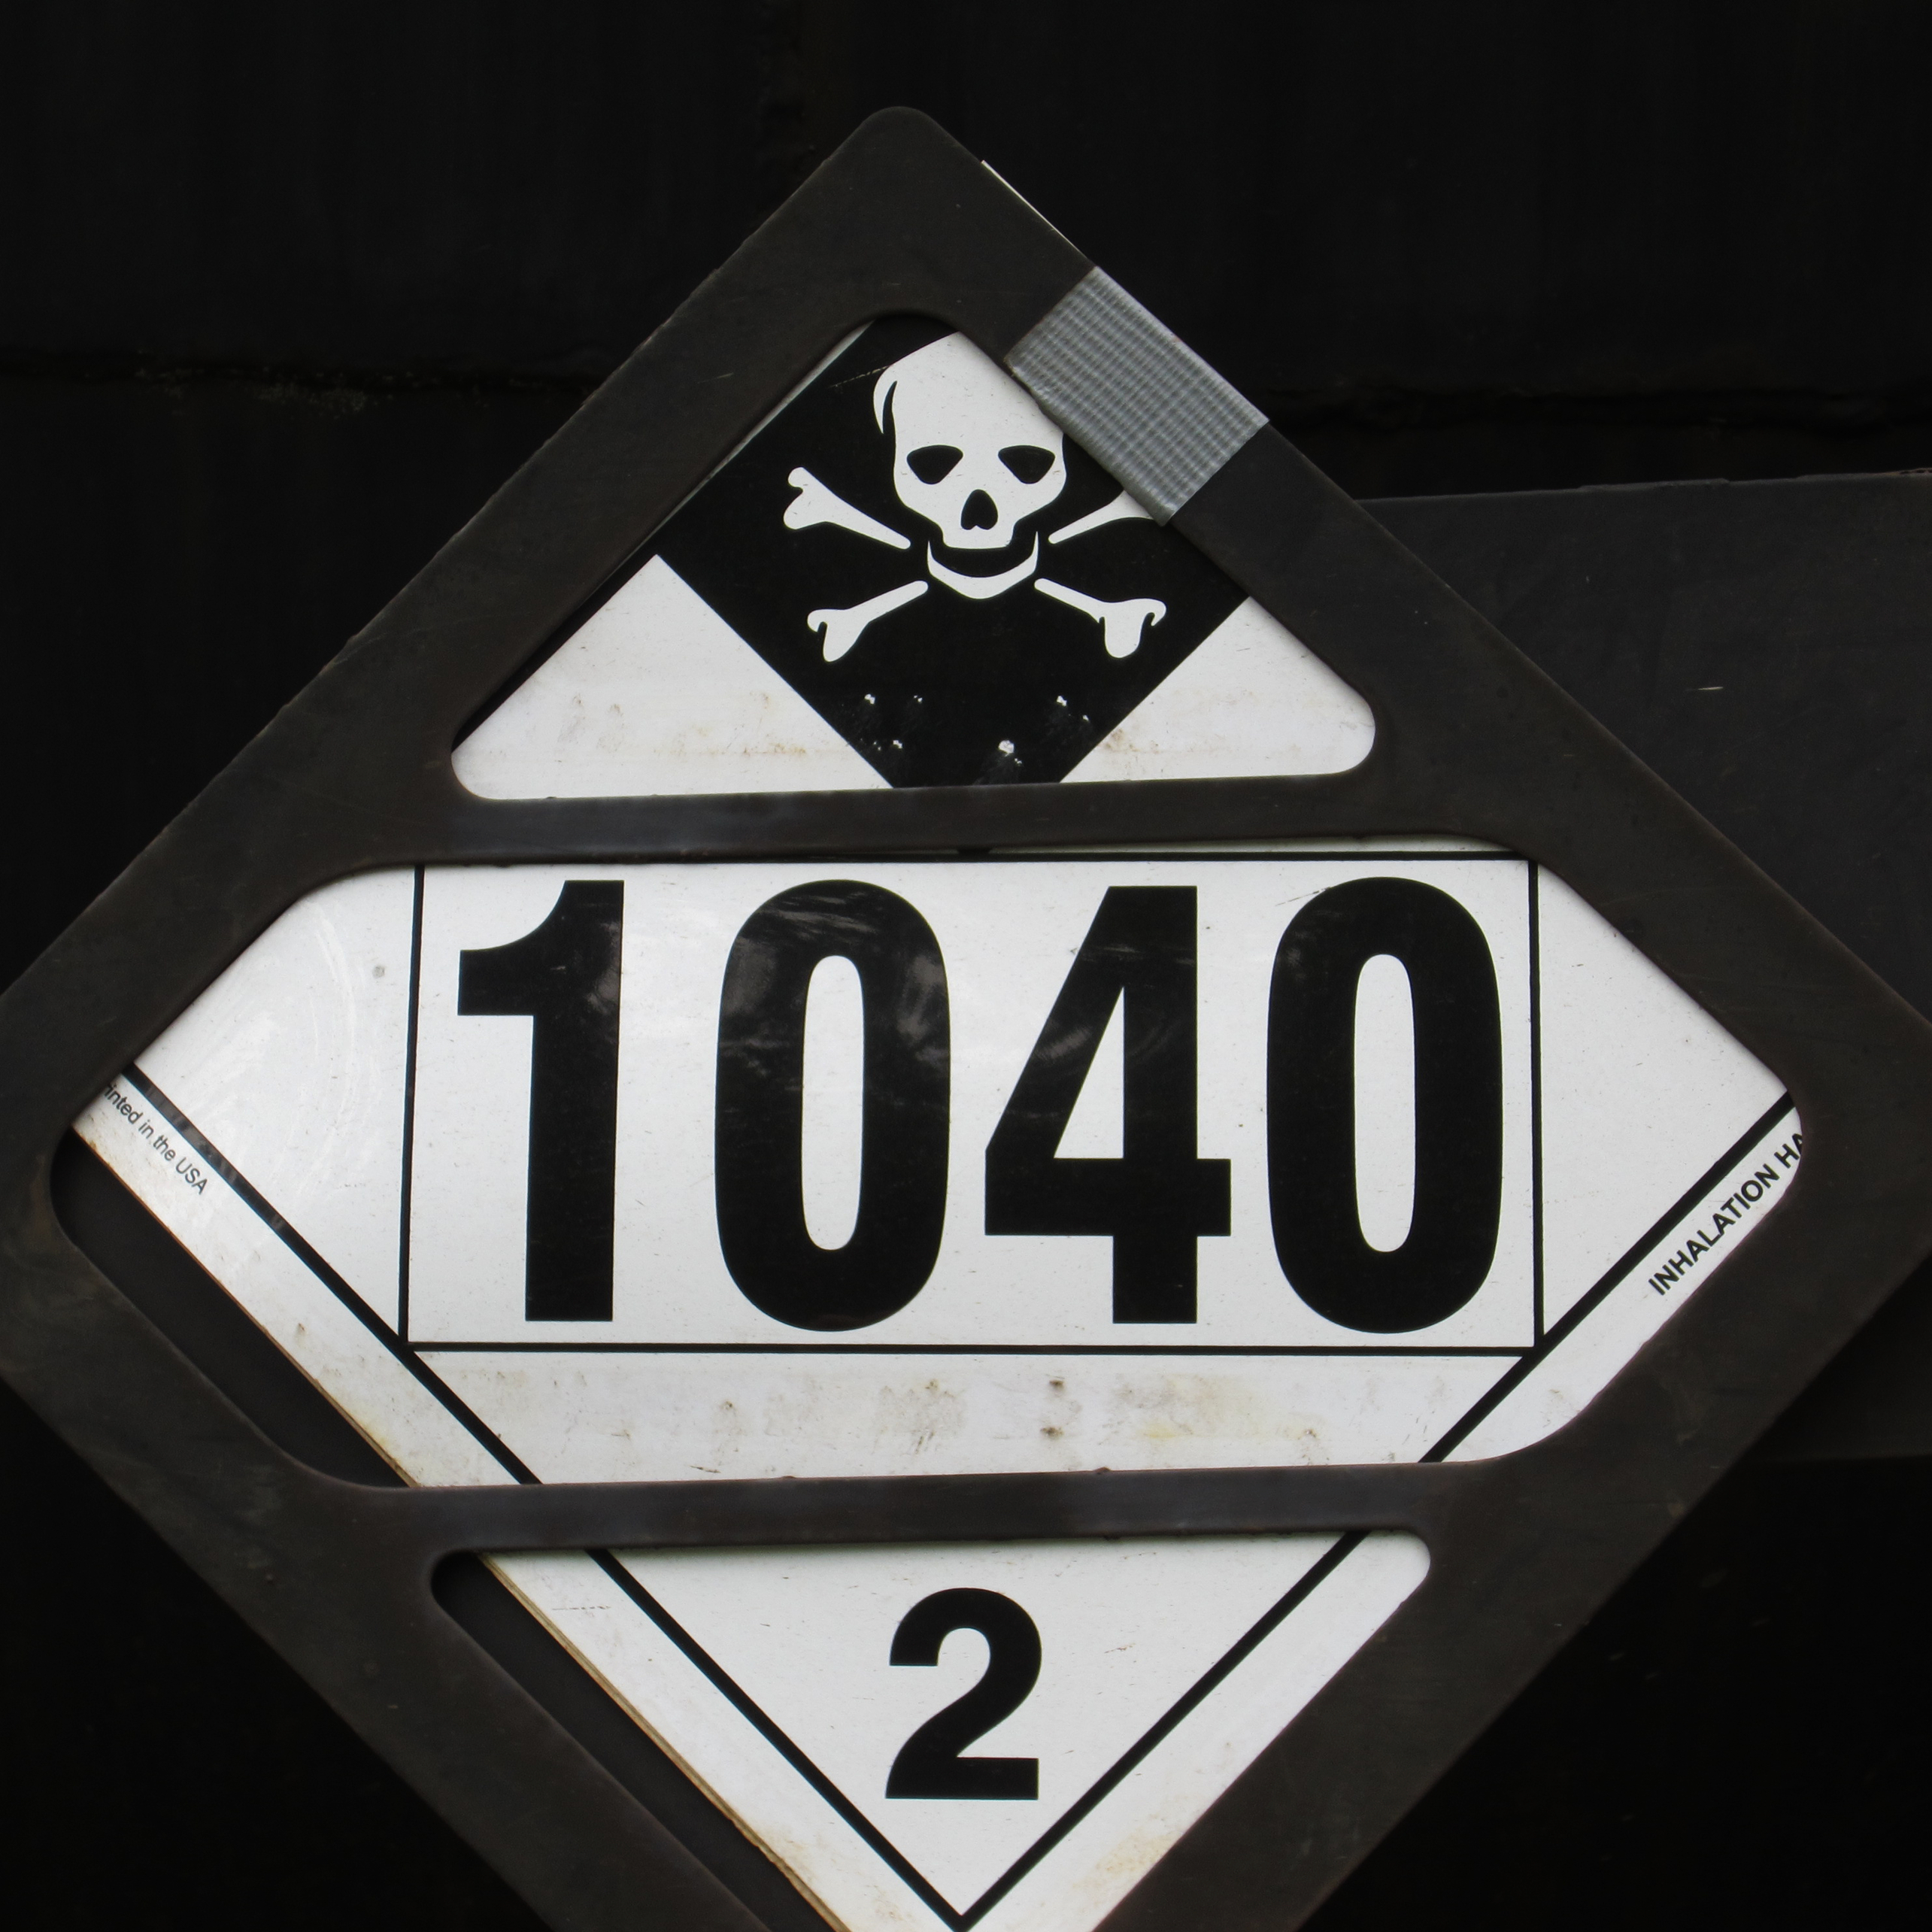 100618_Hall_Chemicals Inc_012.png